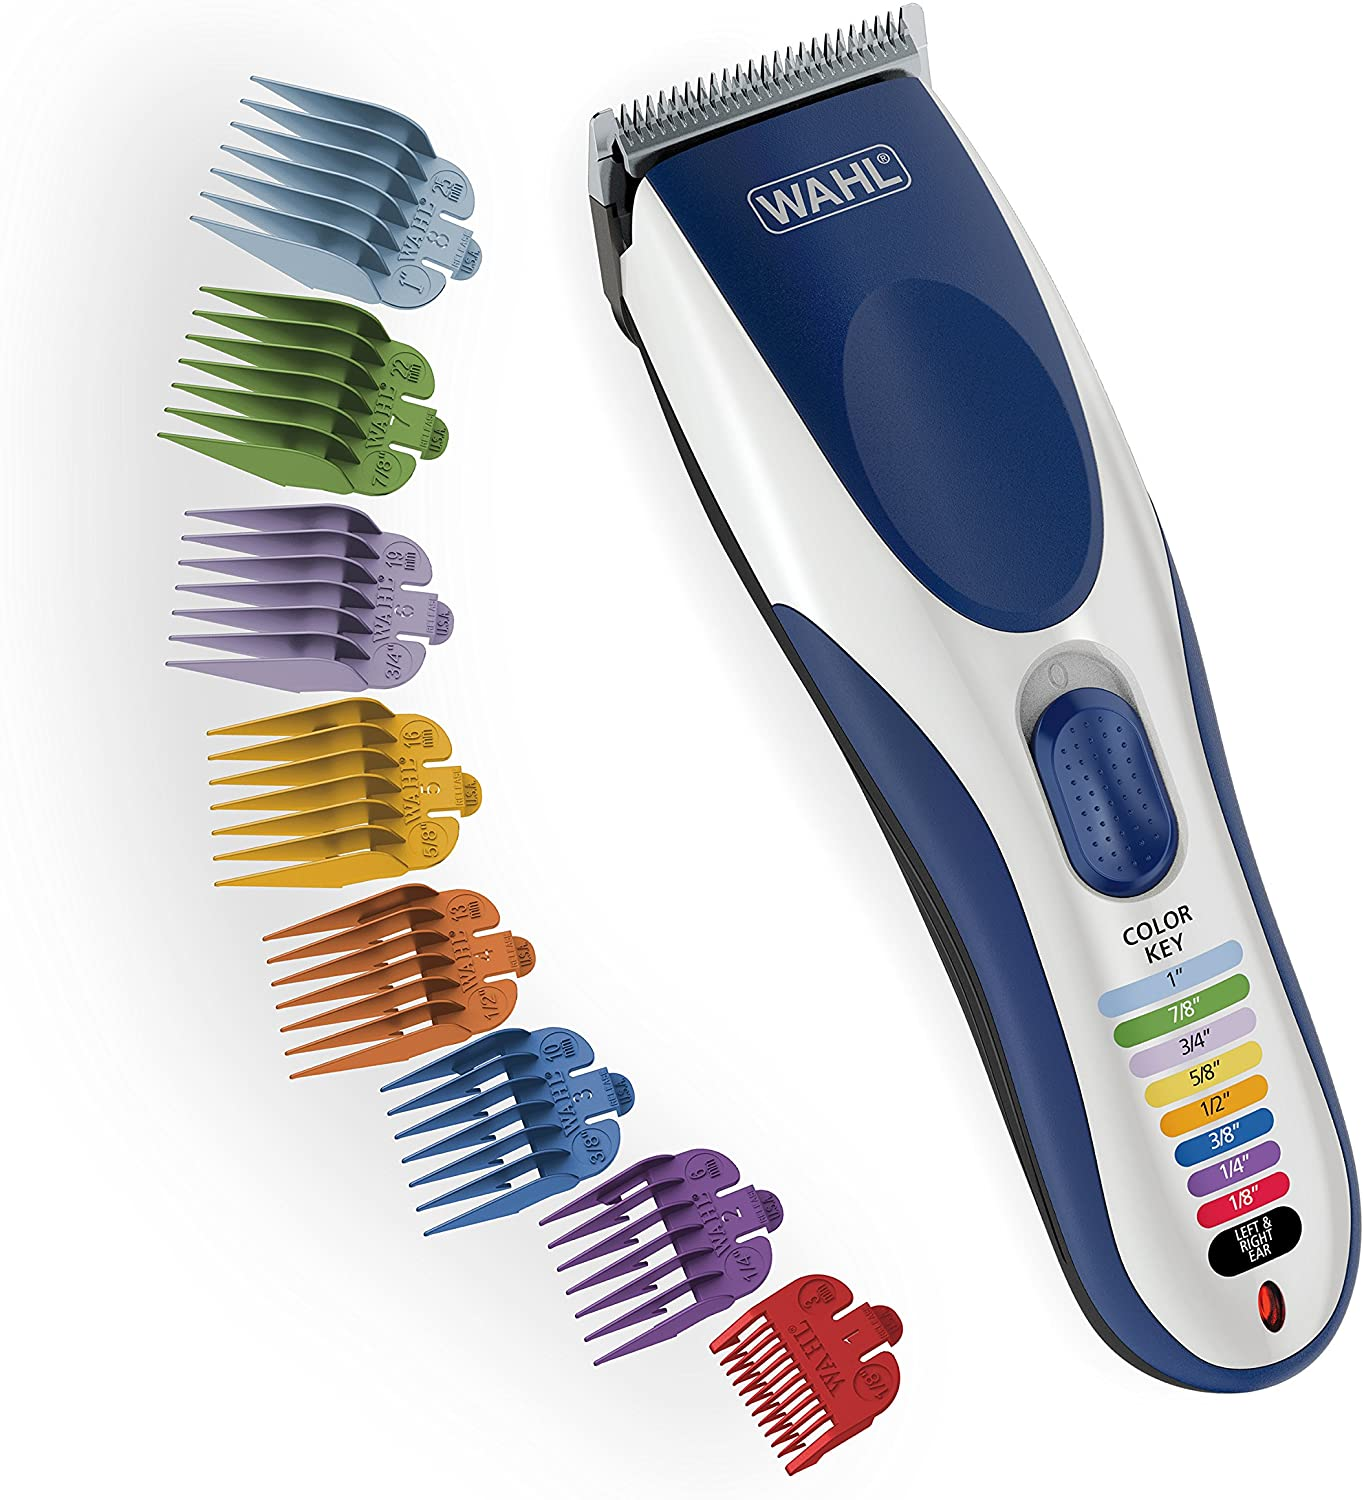 Wahl Hair Trimmer – Great For Your Styles